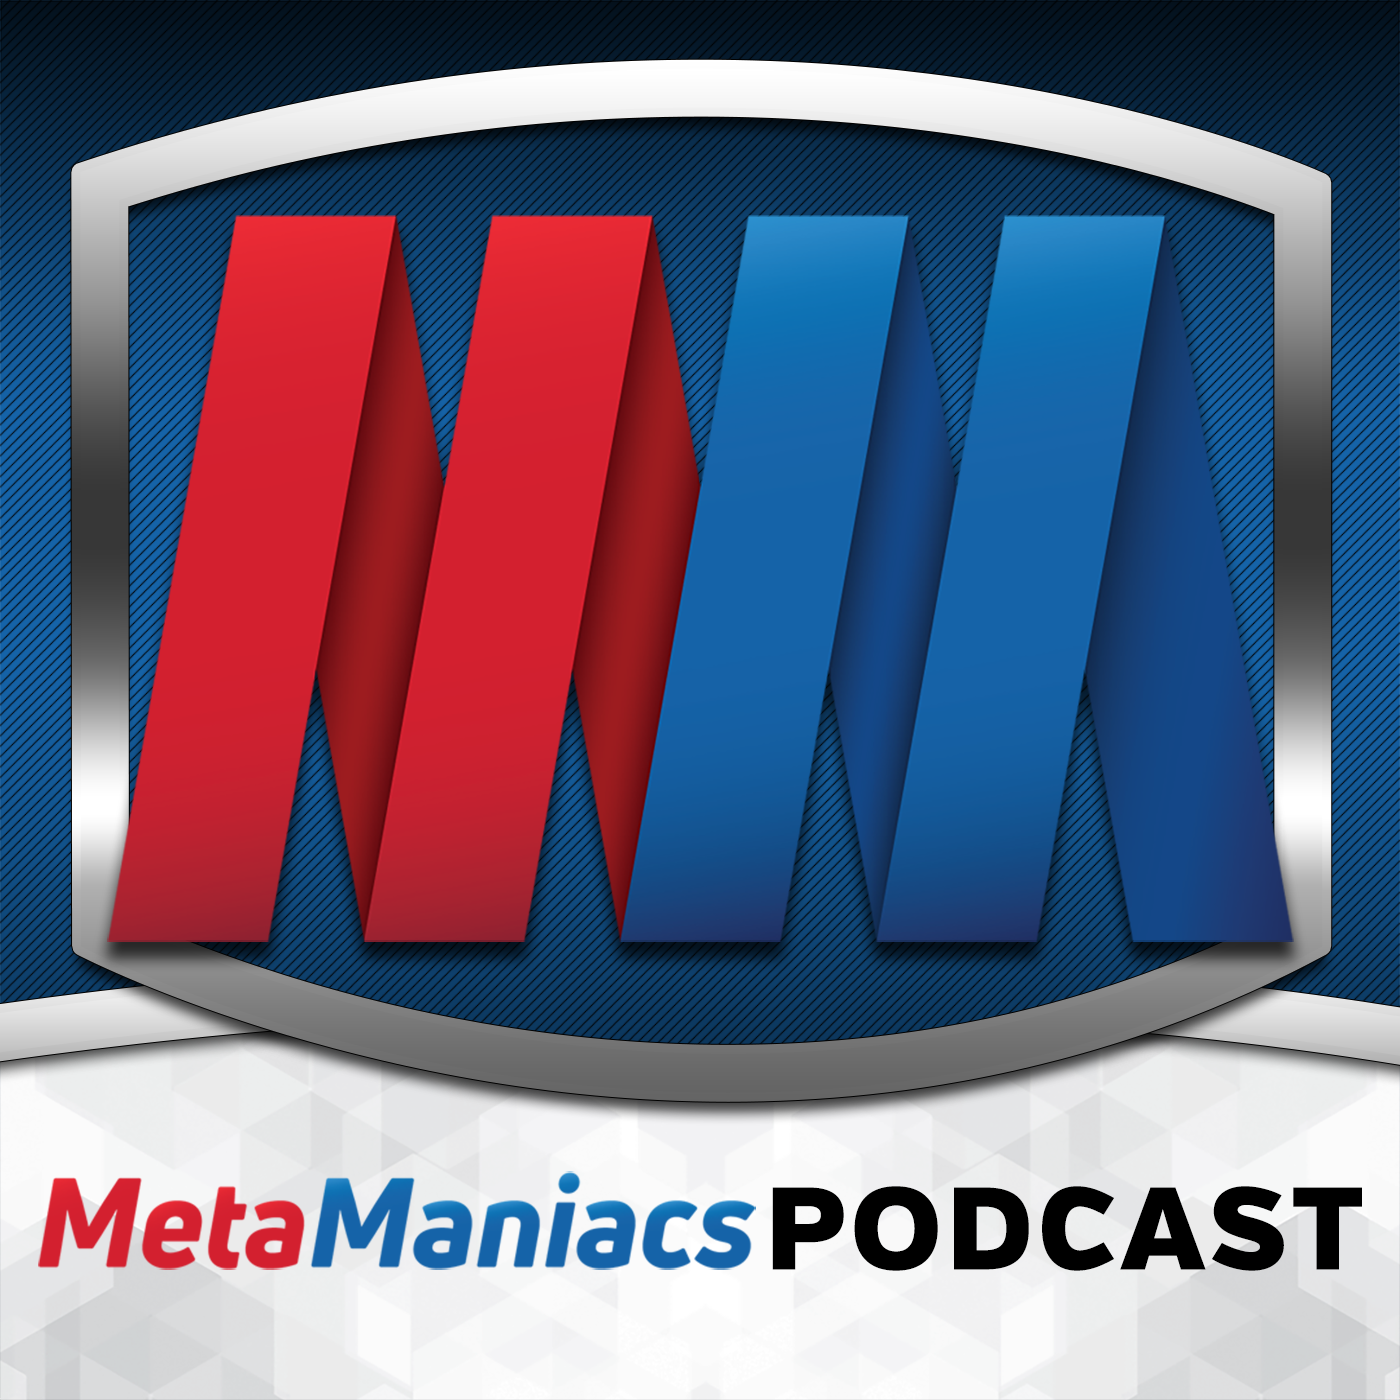 The MetaManiacs Podcast